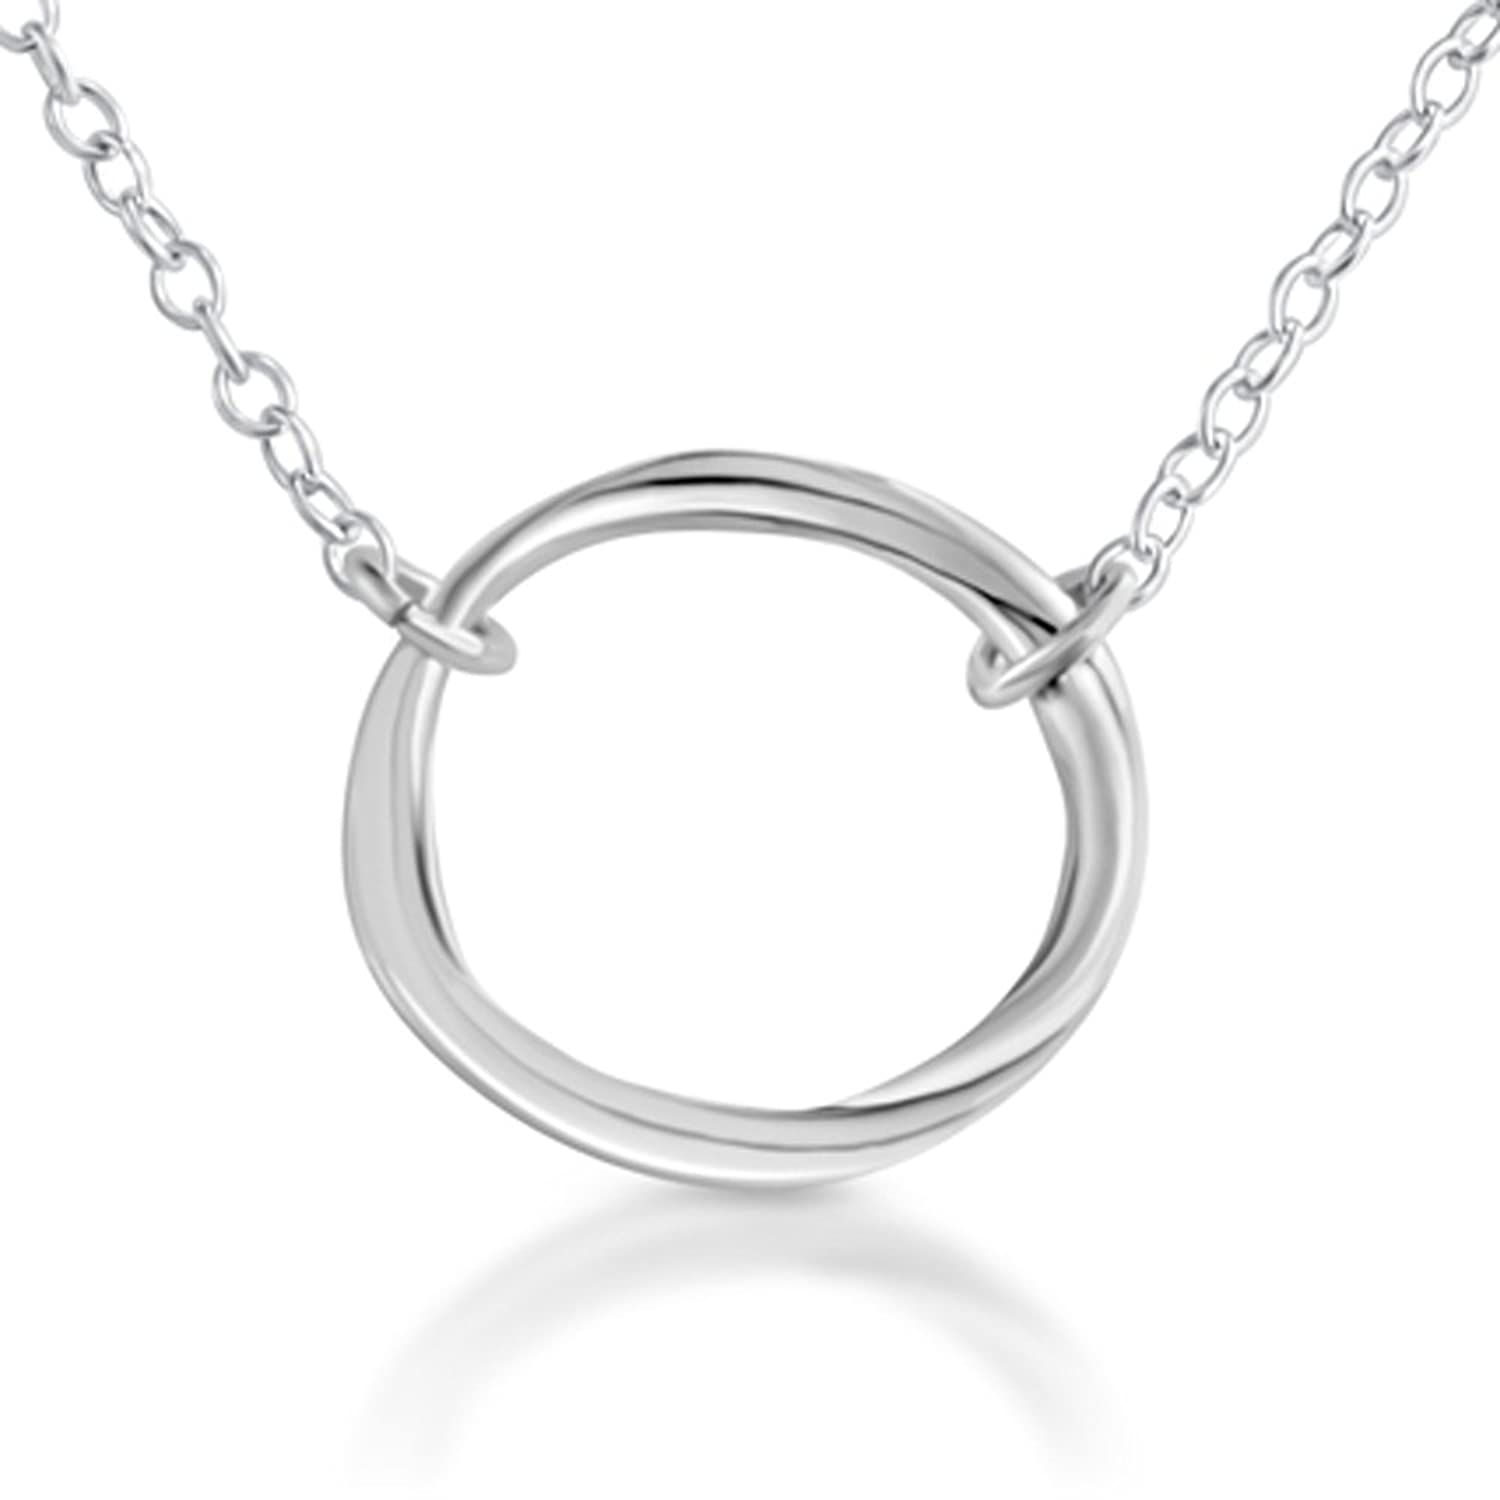 Amazon 925 sterling silver karma ring circle of life pendant amazon 925 sterling silver karma ring circle of life pendant necklace 14 inches jewelry aloadofball Images